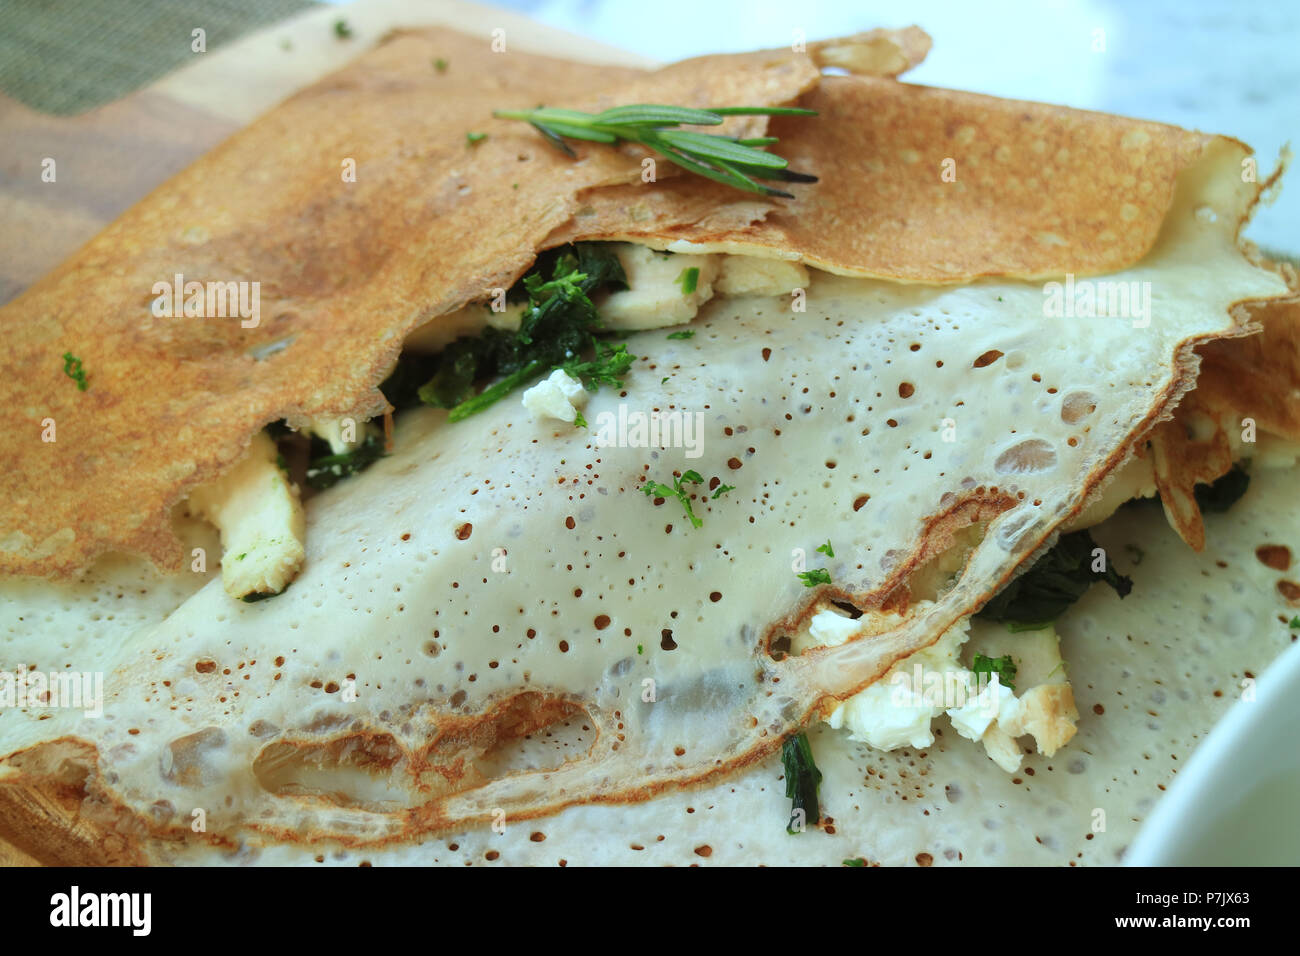 Close up of classic French savory crepe stuffed with spinach, chicken and cheese - Stock Image